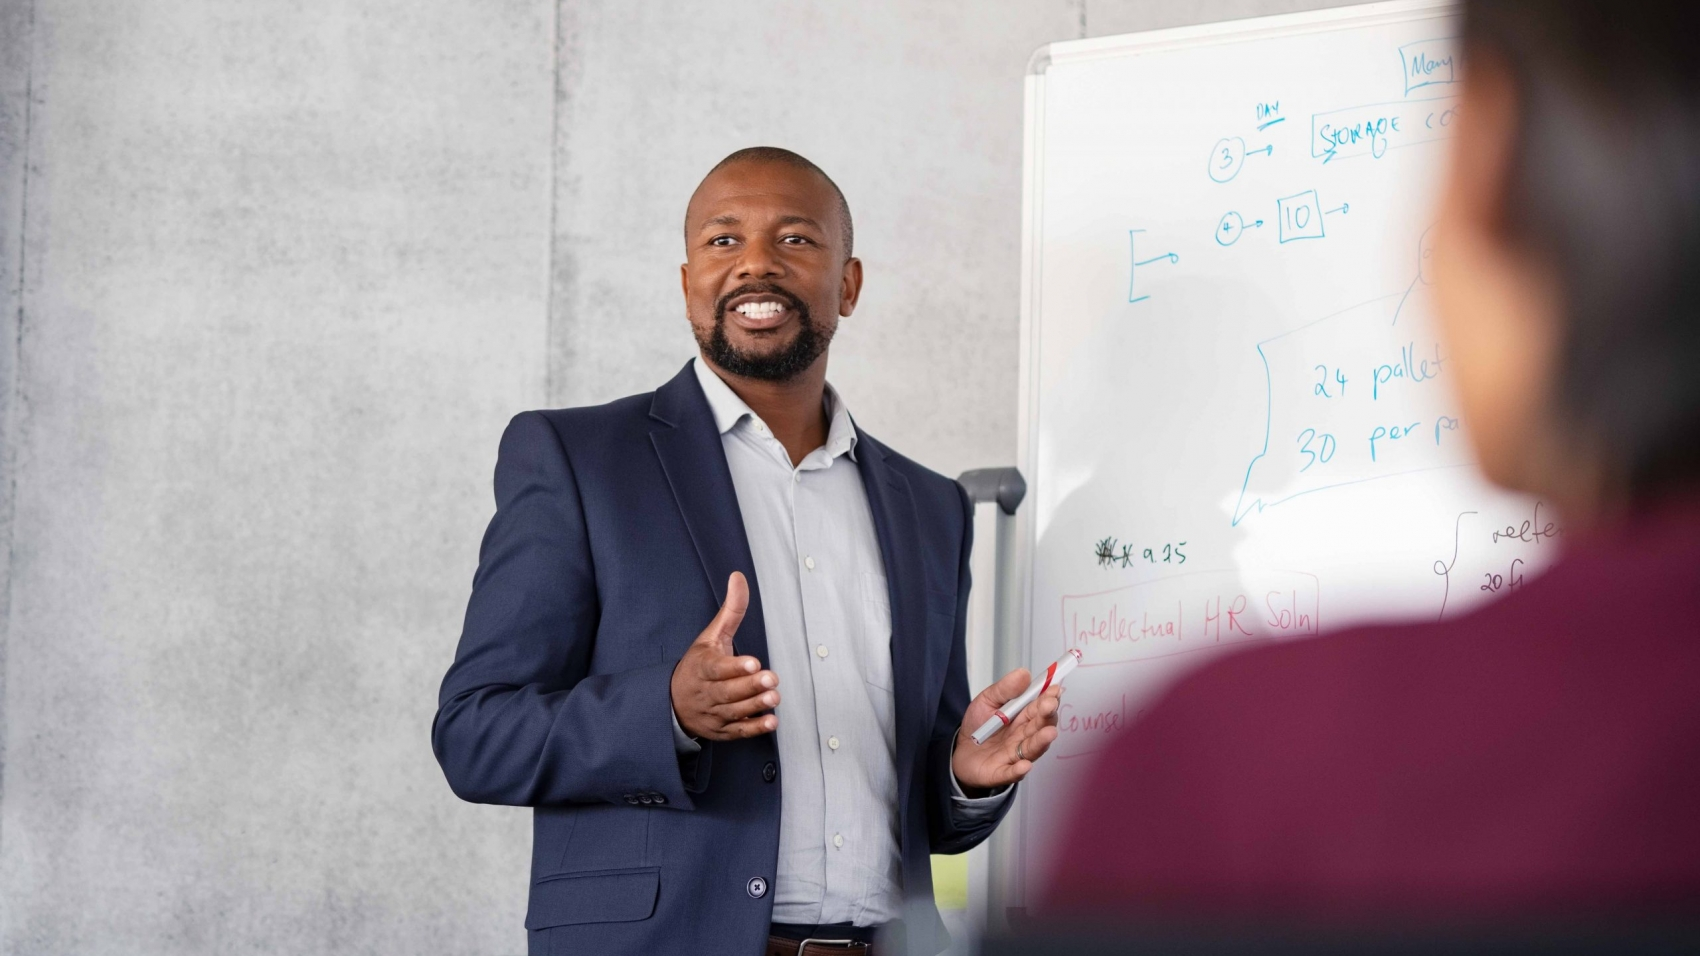 Mature african american coach explaining strategy to his team with copy space. Successful businessman presenting new project to employees during meeting room. Conference speaker talk to audience while giving presentation on whiteboard to business group of people.